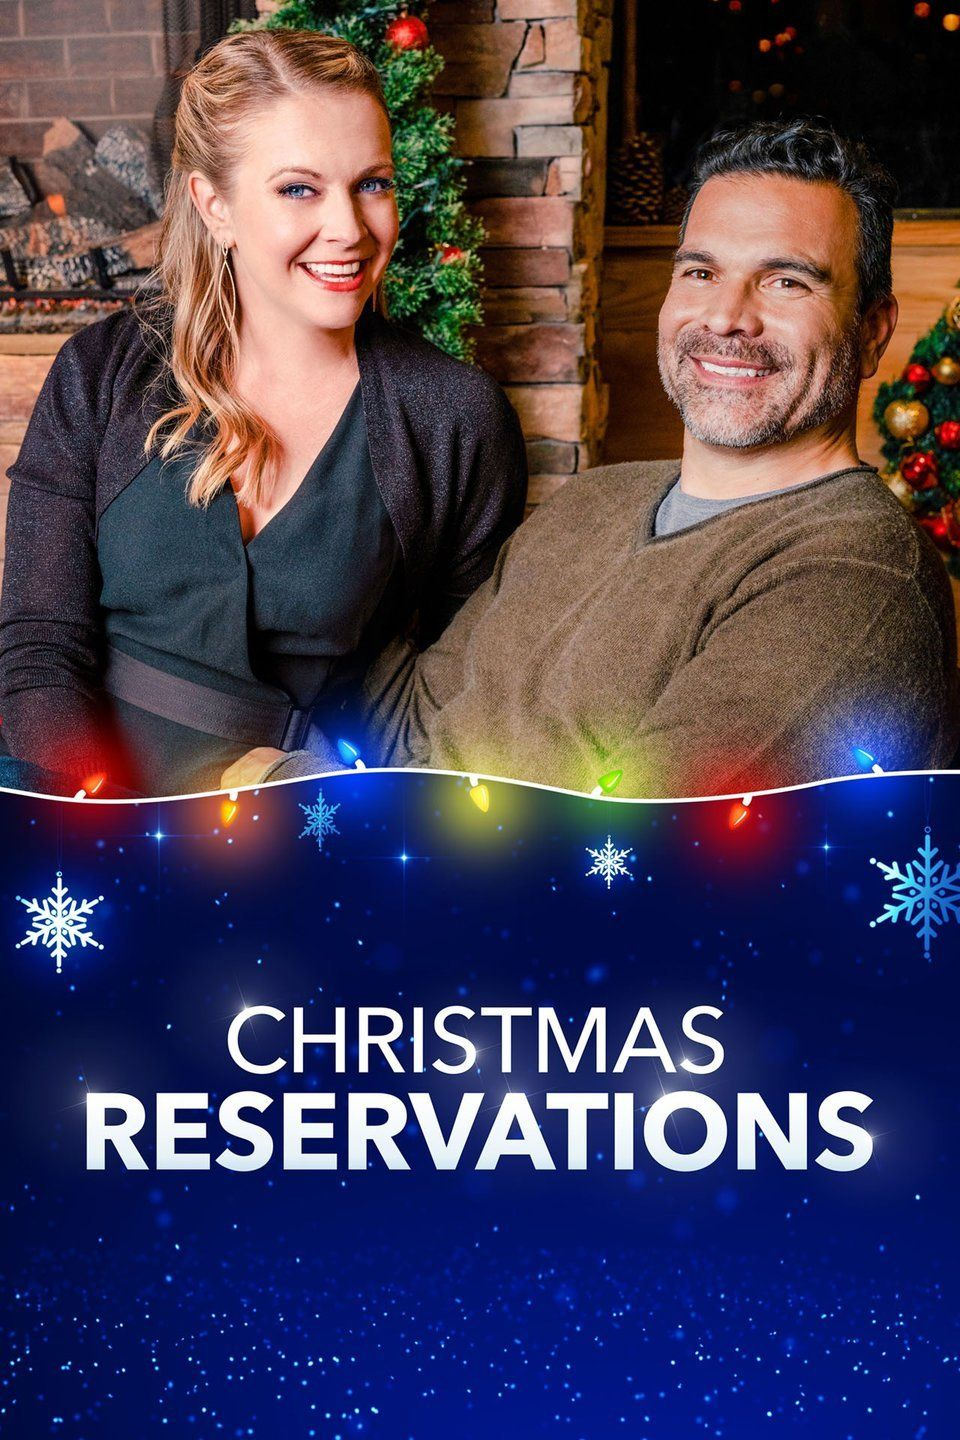 Christmas Reservations 2019 Christmas Movies Hallmark Christmas Movies Hallmark Movies Romance